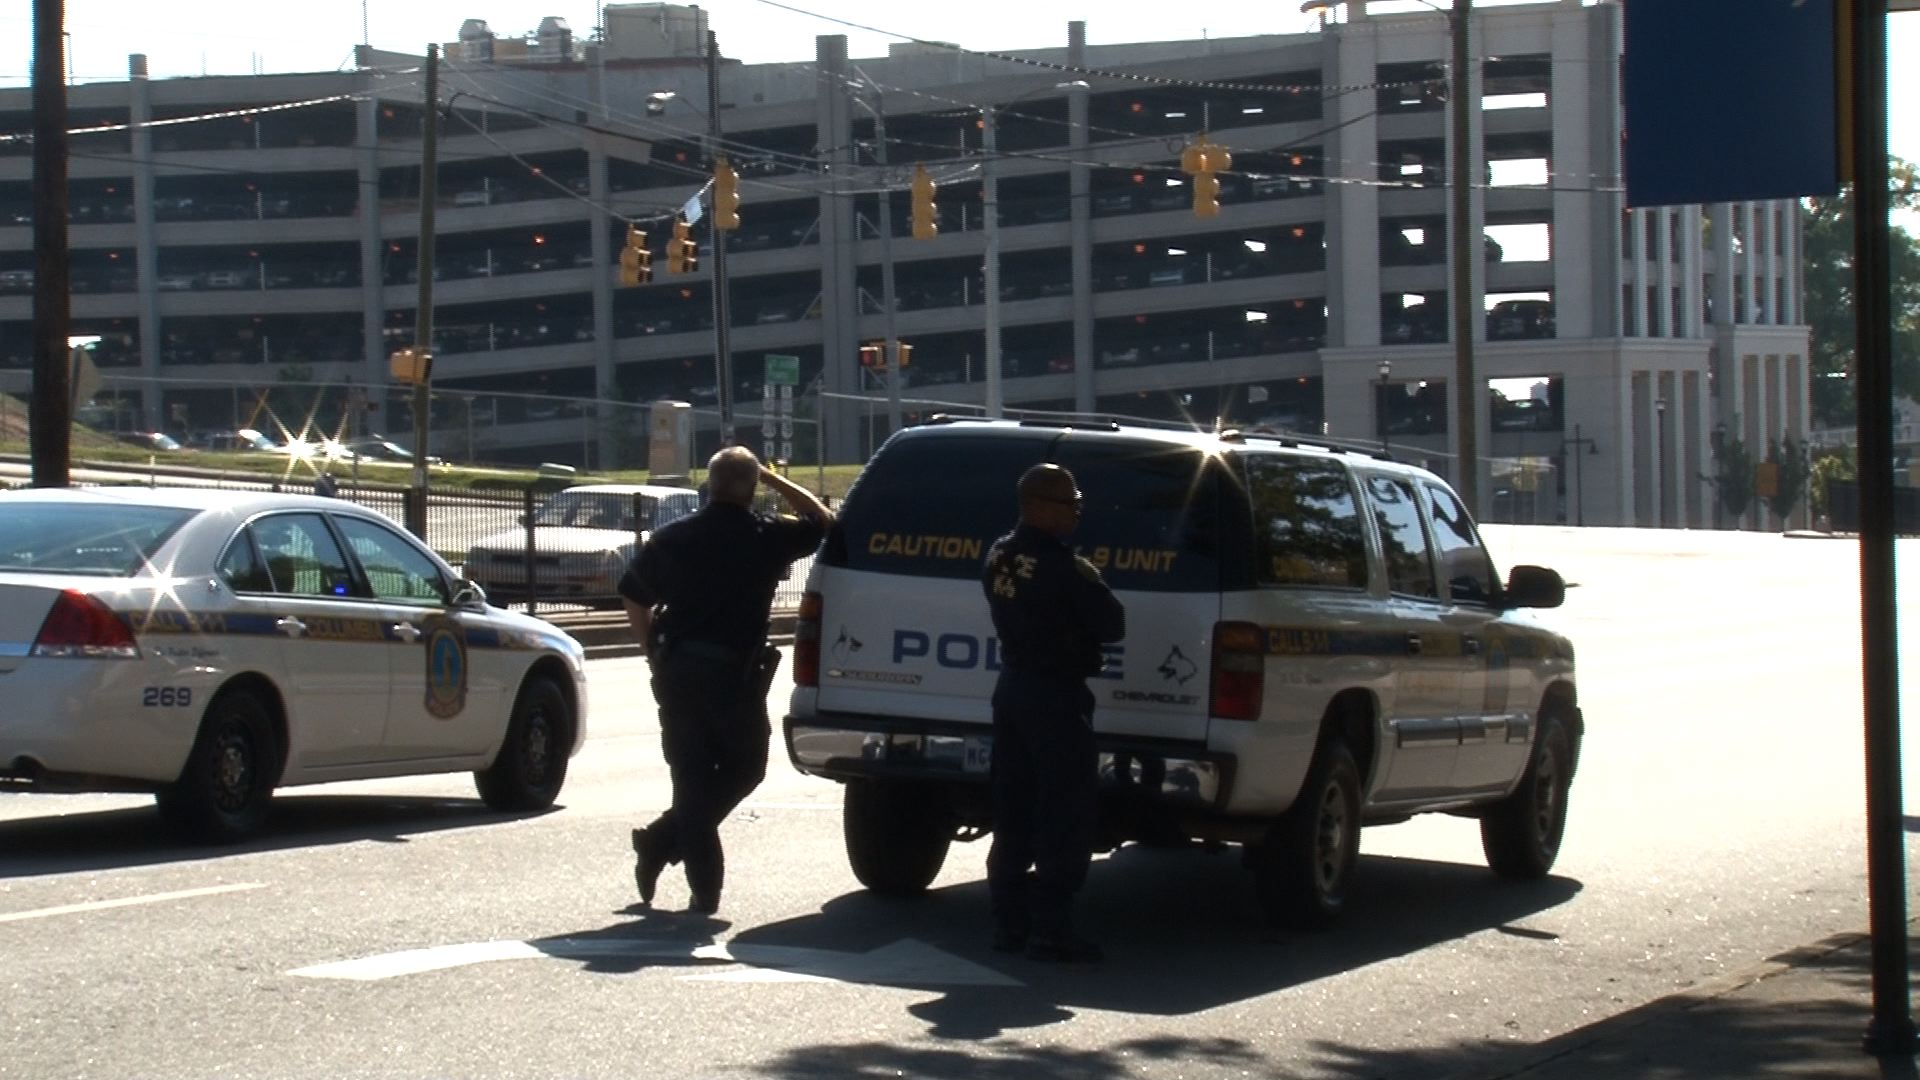 Columbia and University police closed off Assembly and Blossom streets during the investigation.